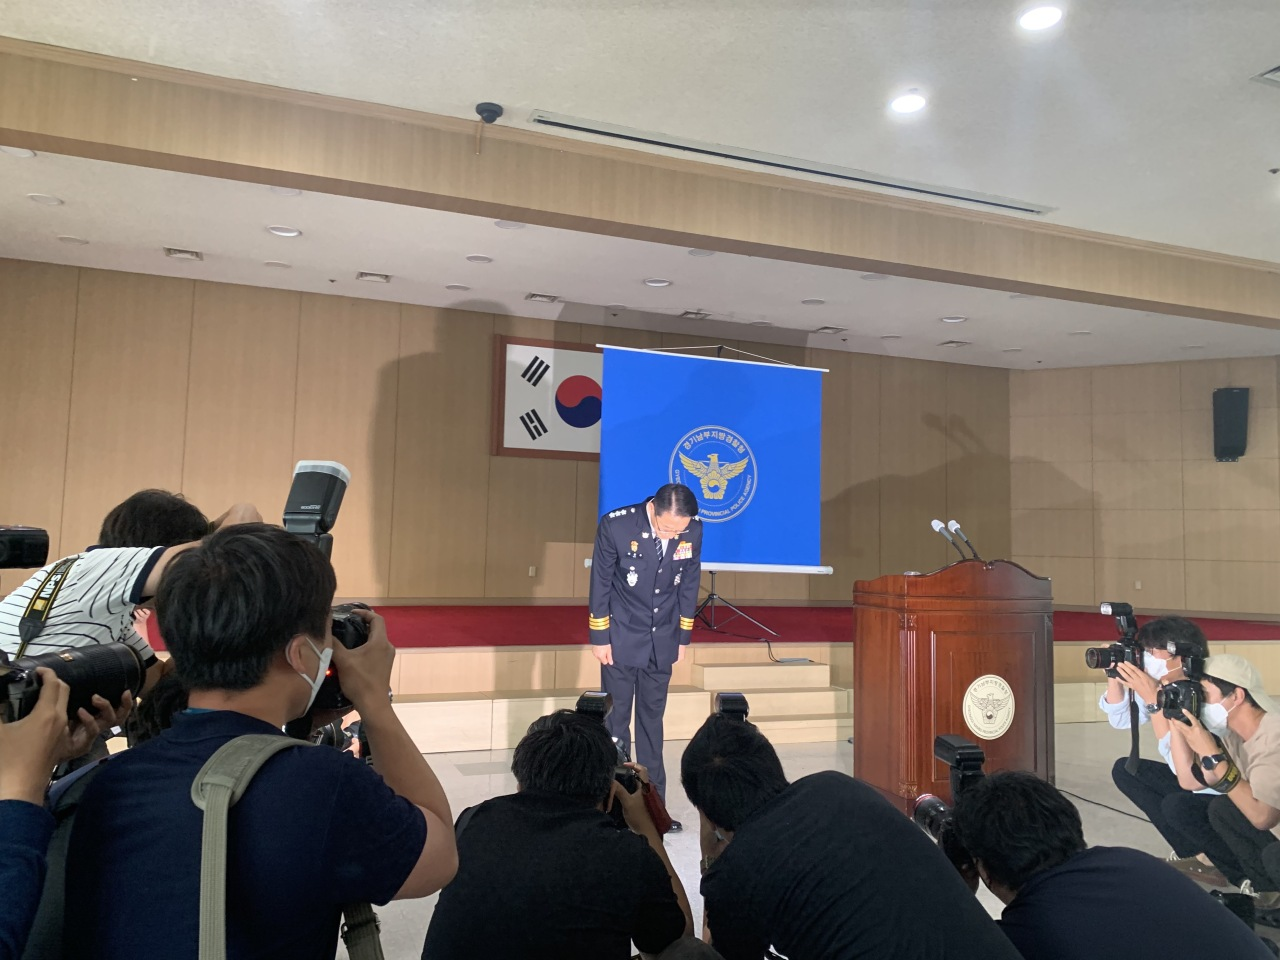 Gyeonggi provincial police agency`s chief Bae Yong-ju takes a deep bow in a Thursday briefing as he offers apology to victims of police brutality. (Kim Arin/The Korea Herald)